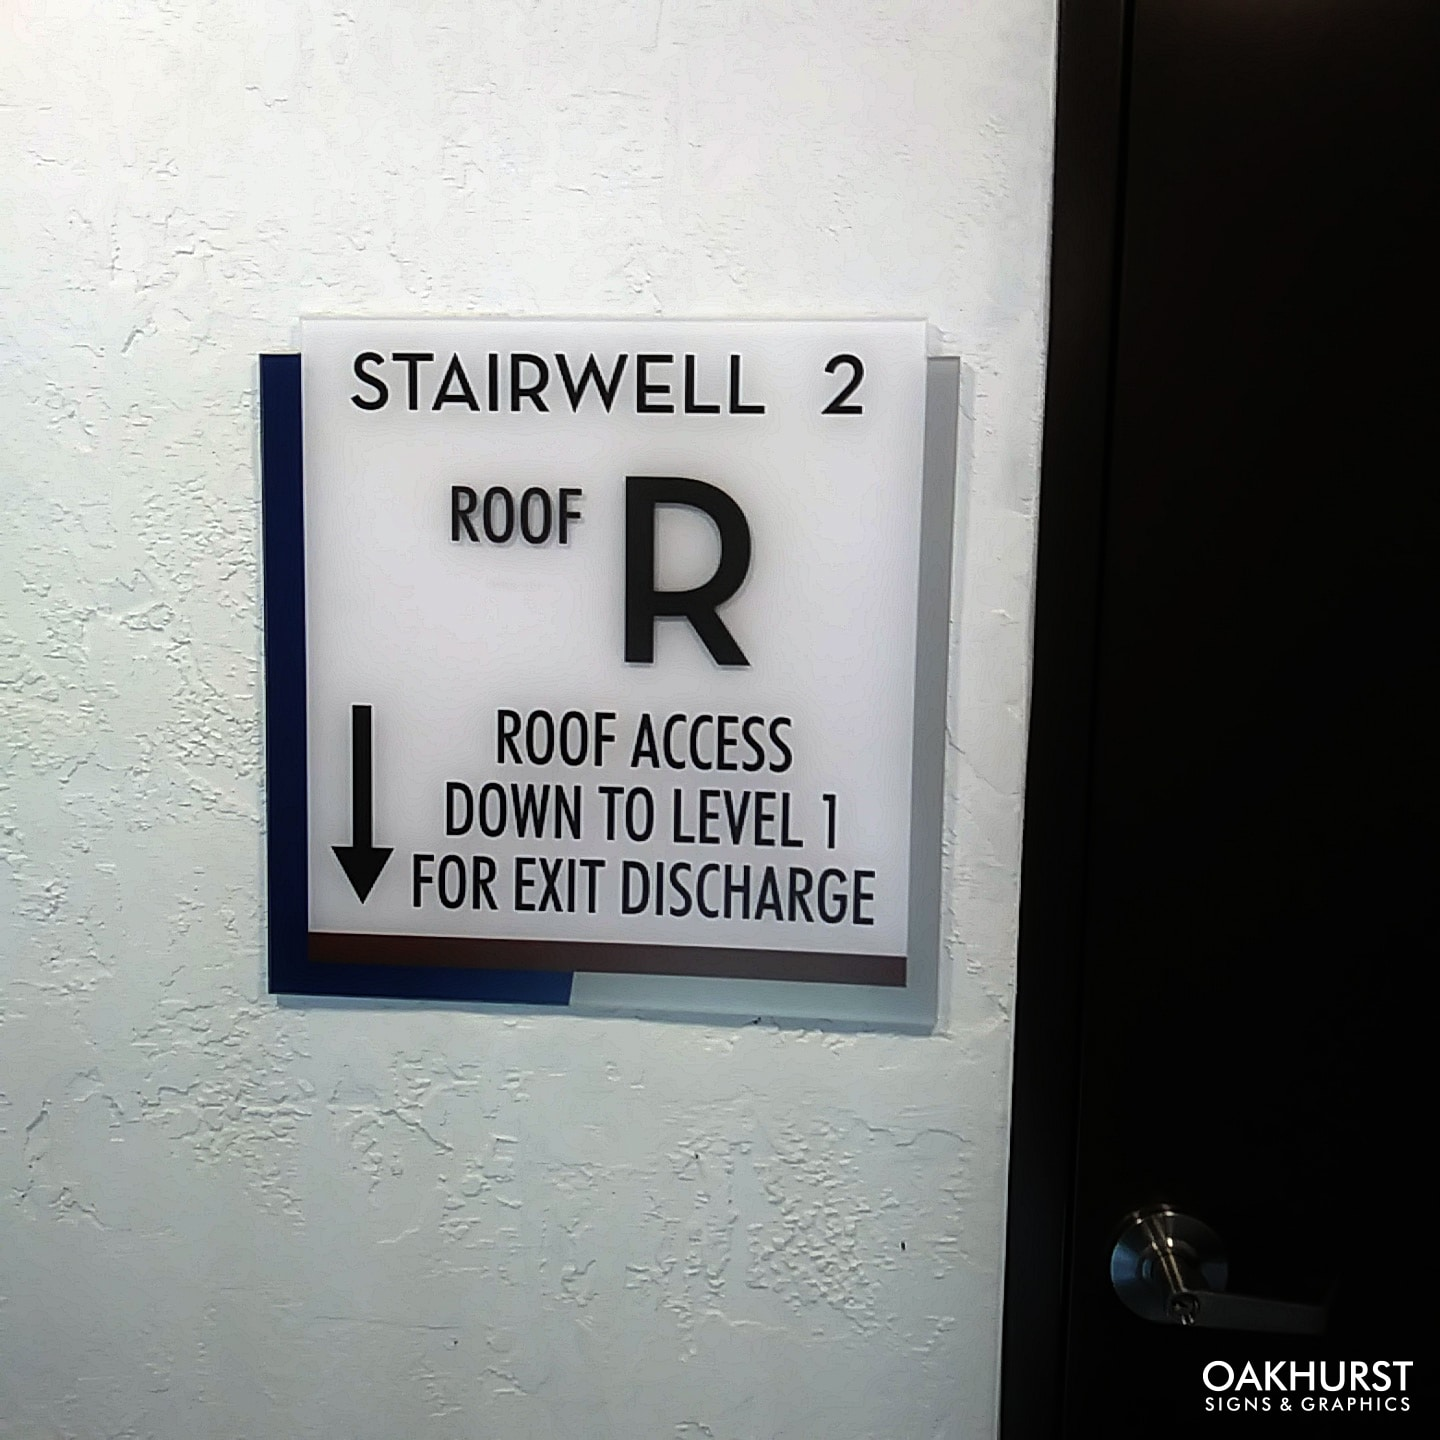 Wayfinding sign for stairwell in building